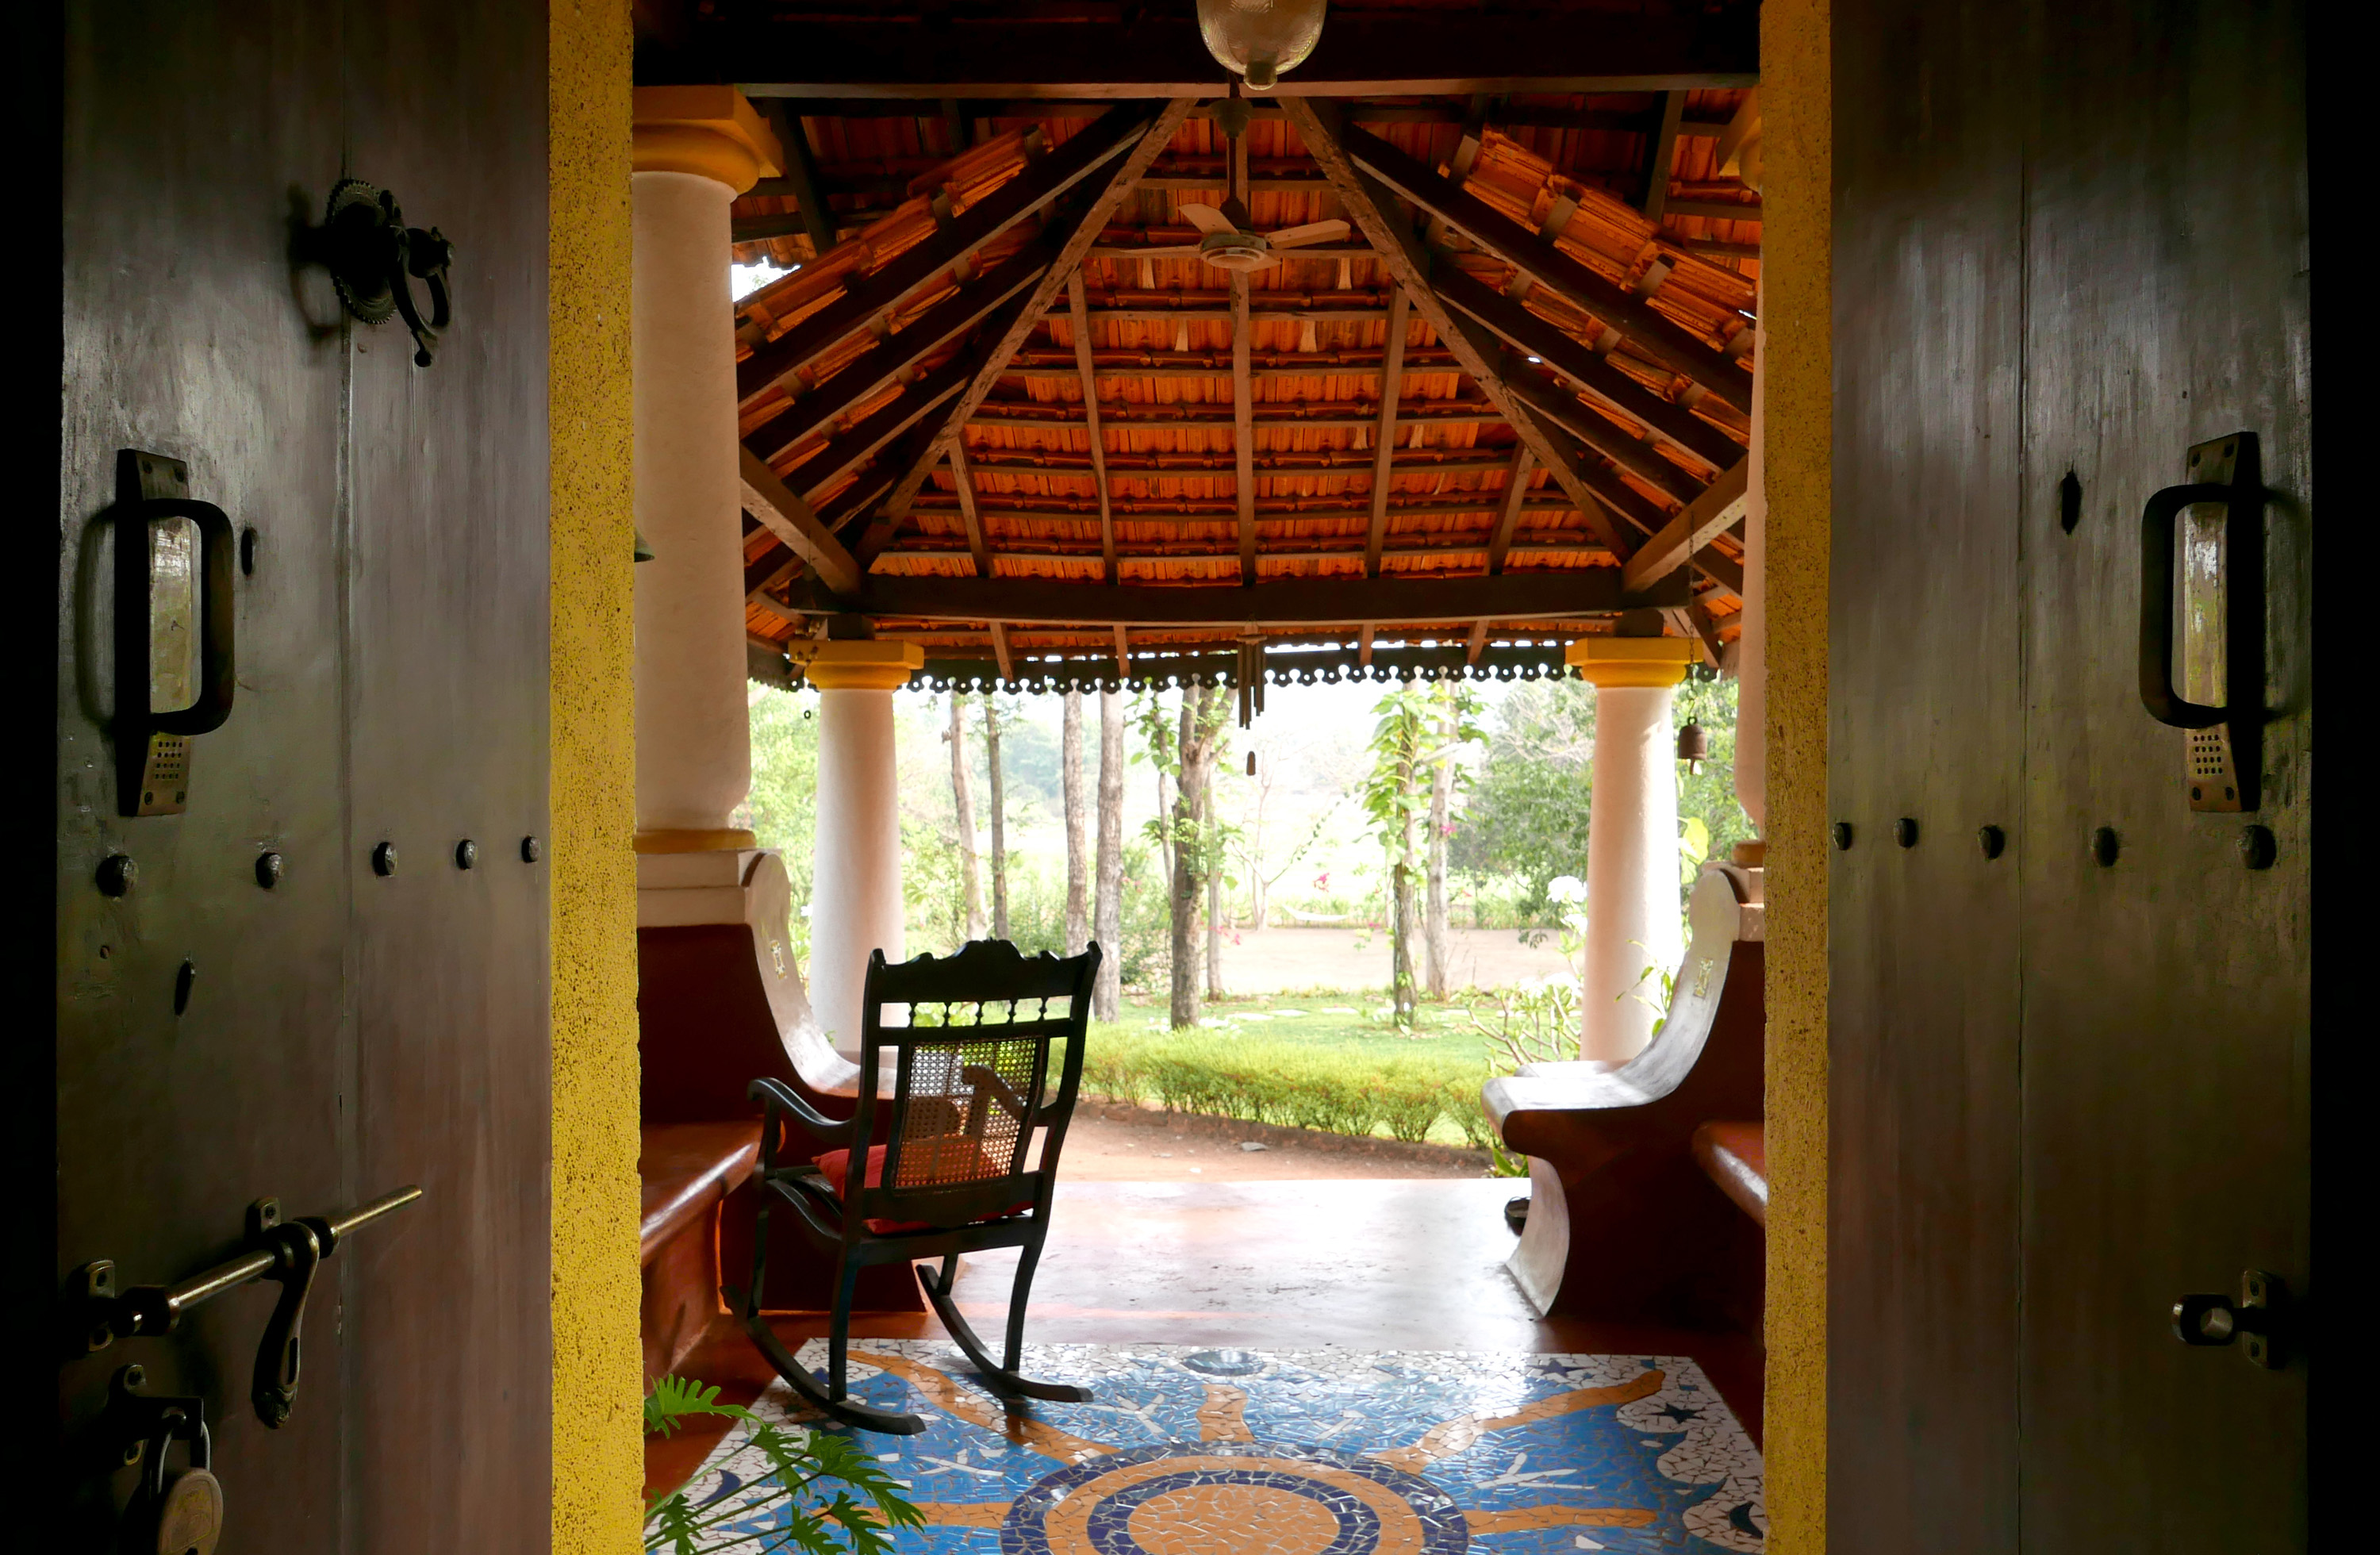 Arco Iris Boutique Homestay South Goa India